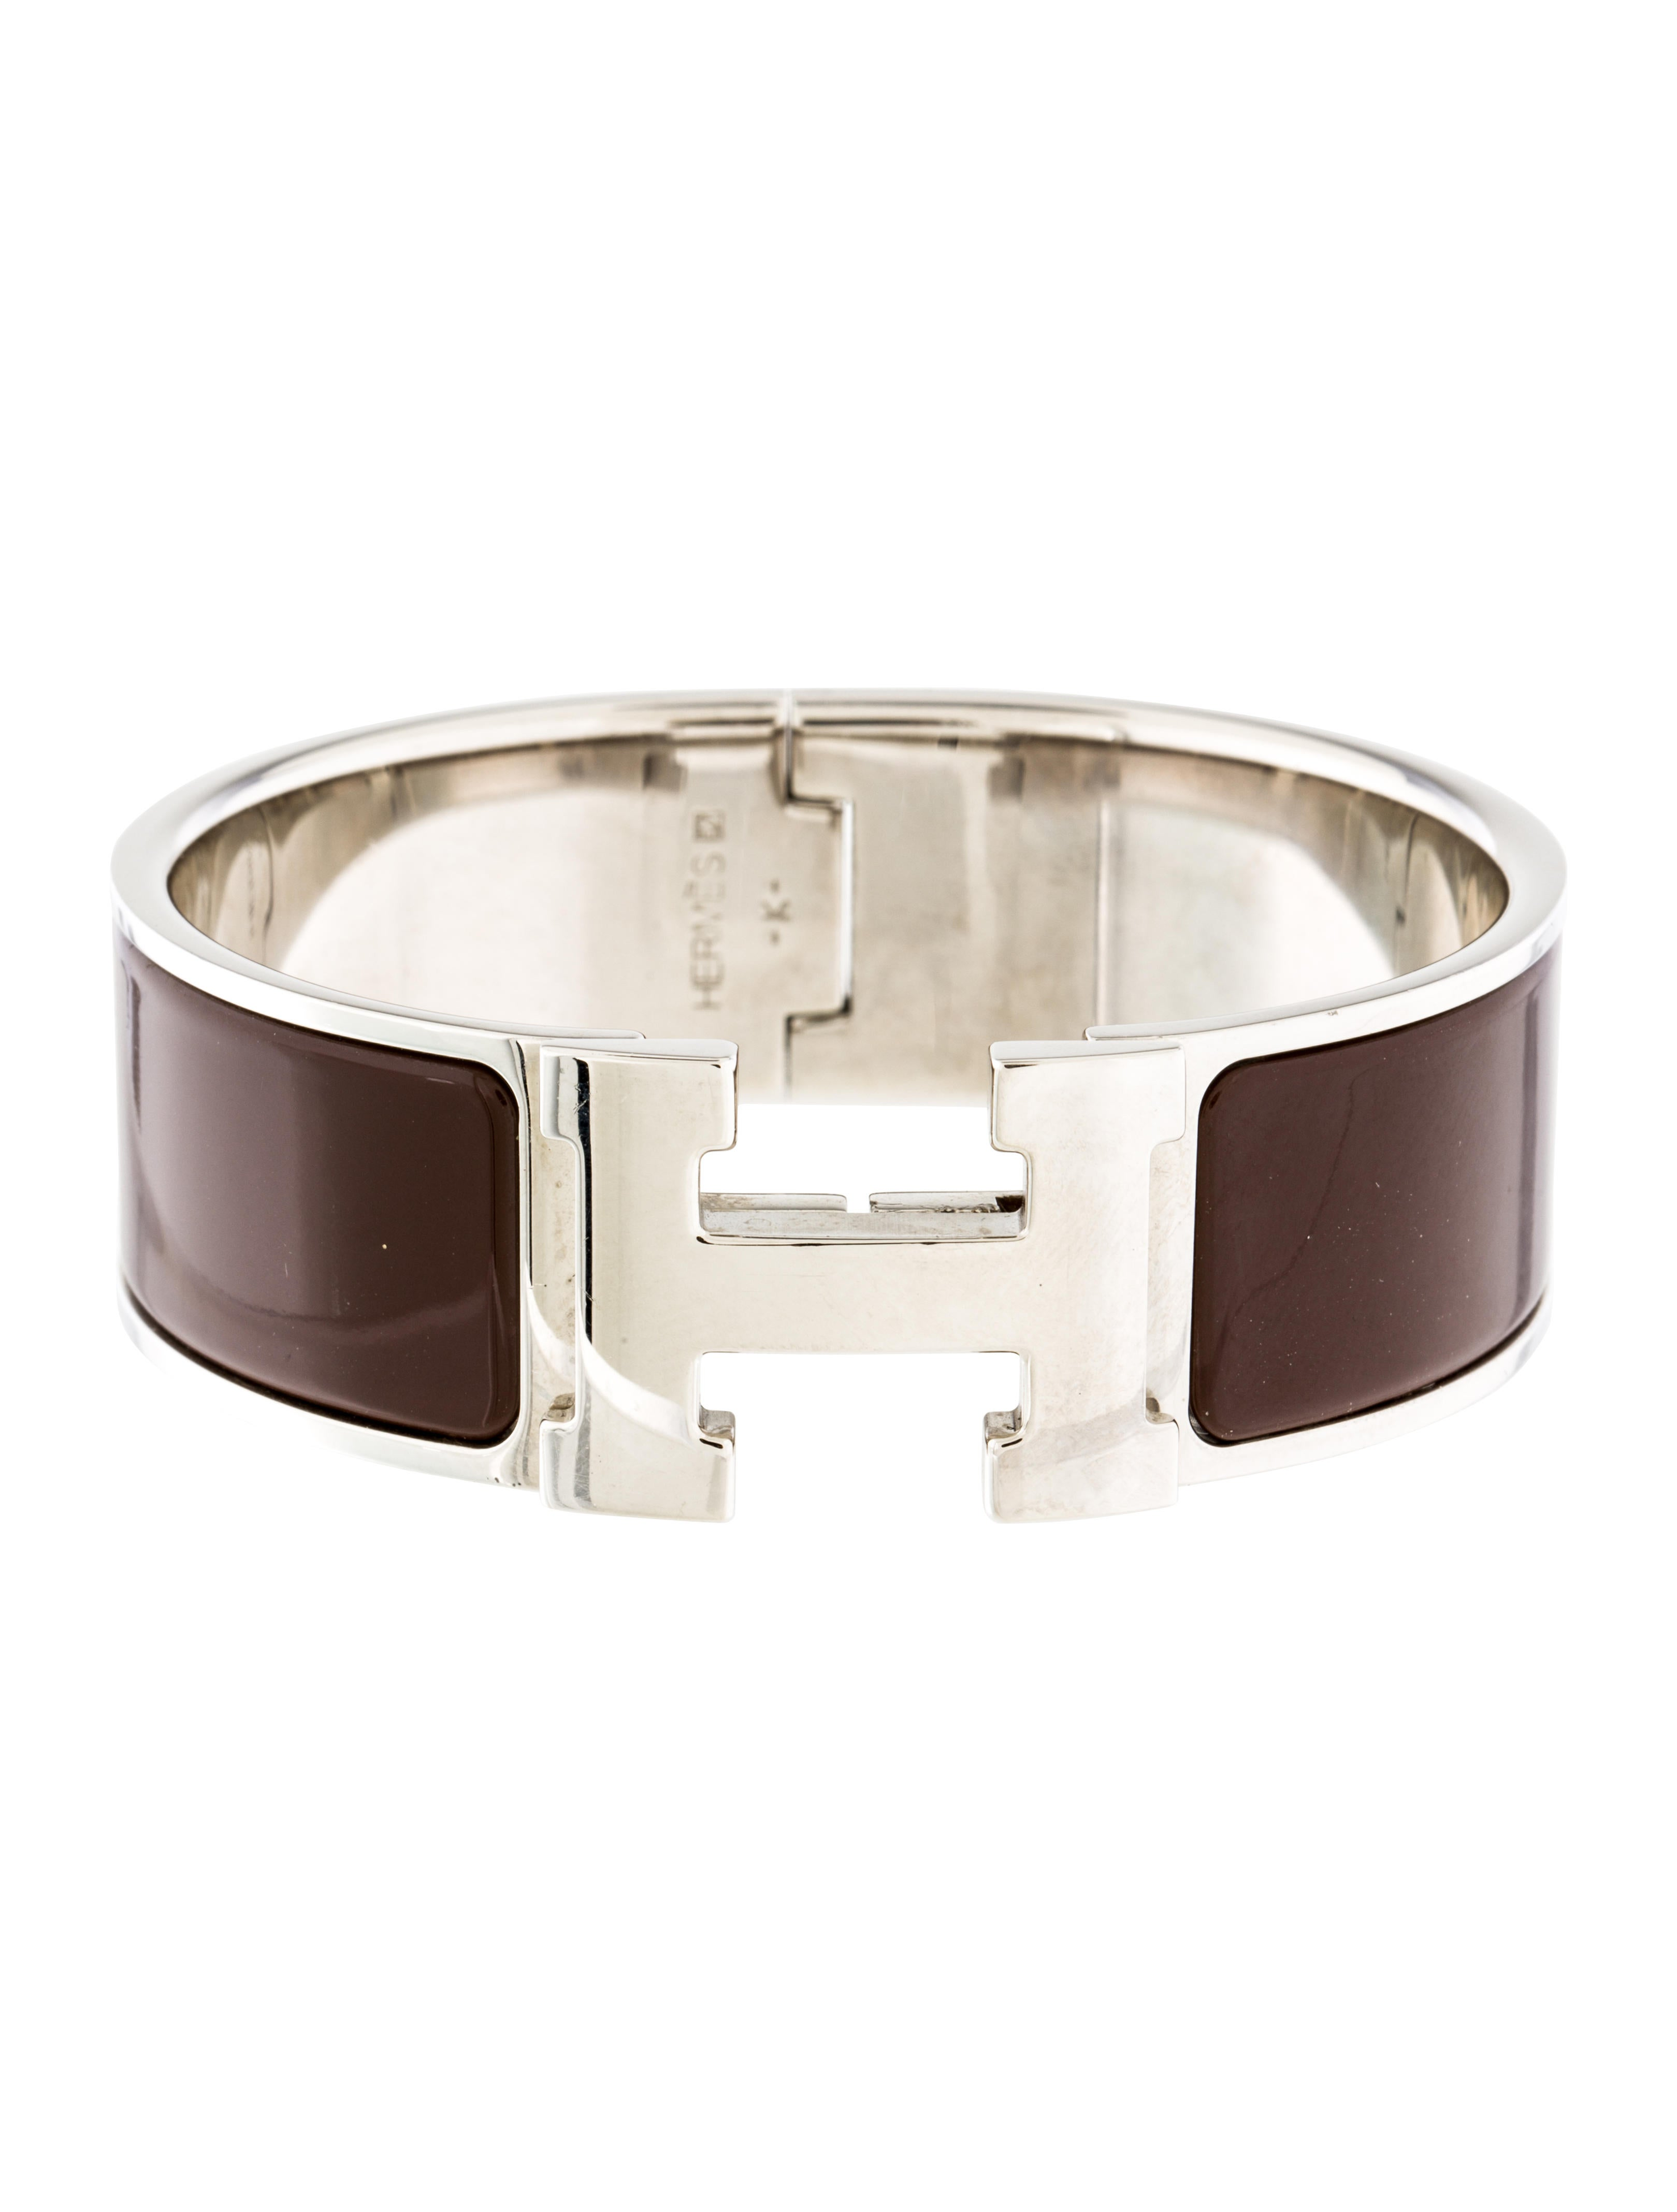 herm 232 s wide clic clac h bracelet bracelets her93258 the realreal